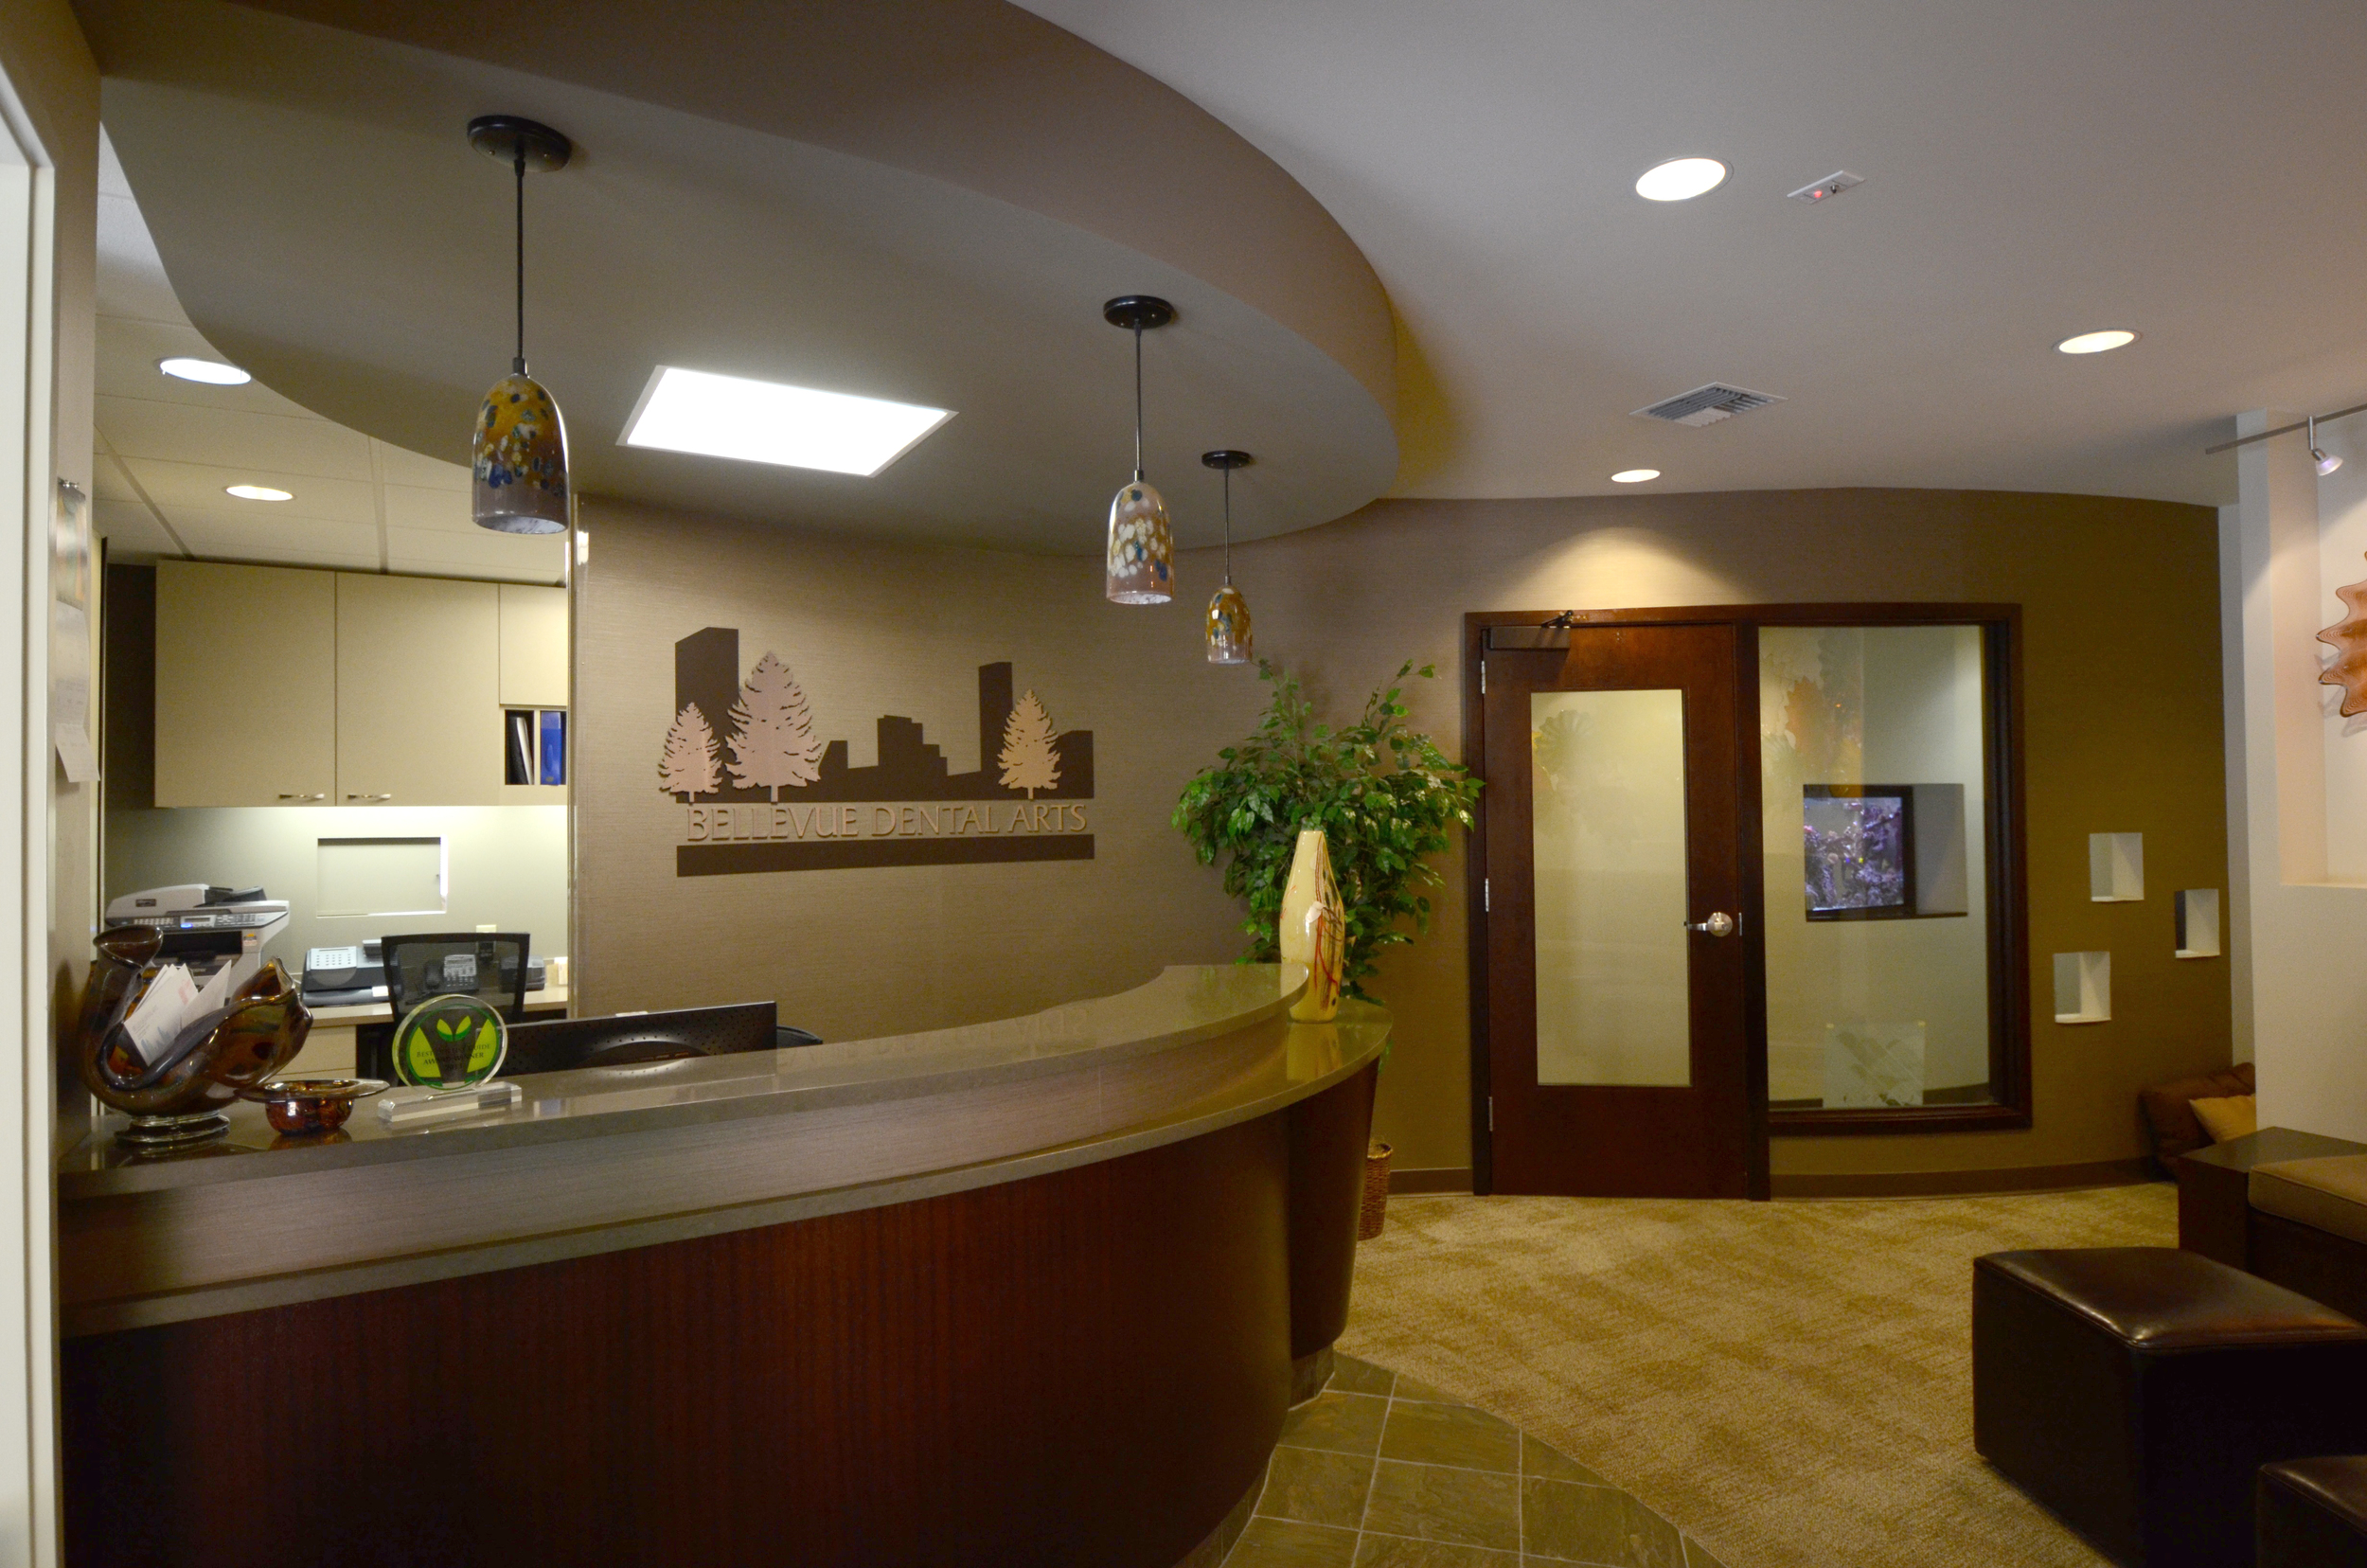 Bellevue Dental Arts waiting room and front desk